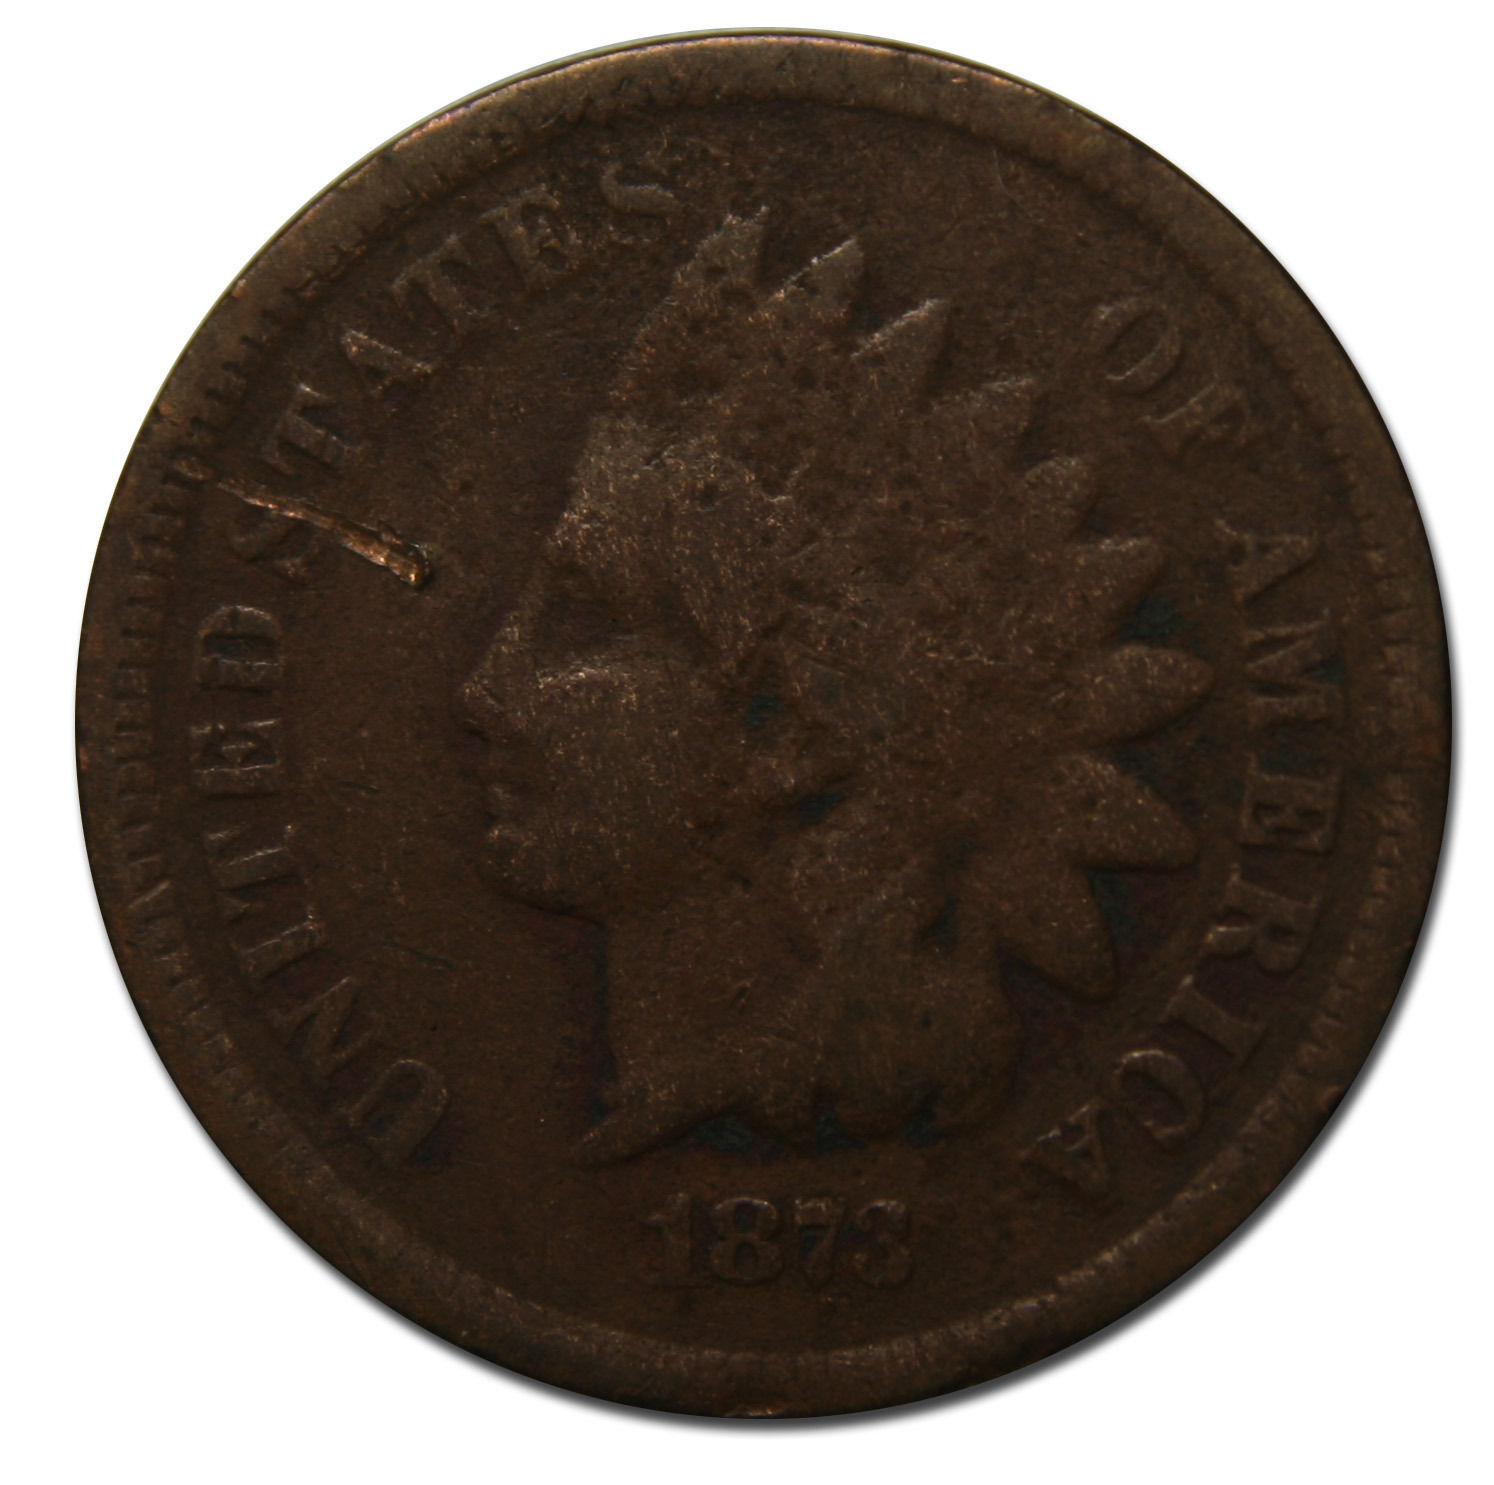 1873 One Cent Indian Head Penny Coin Lot# MZ 3780